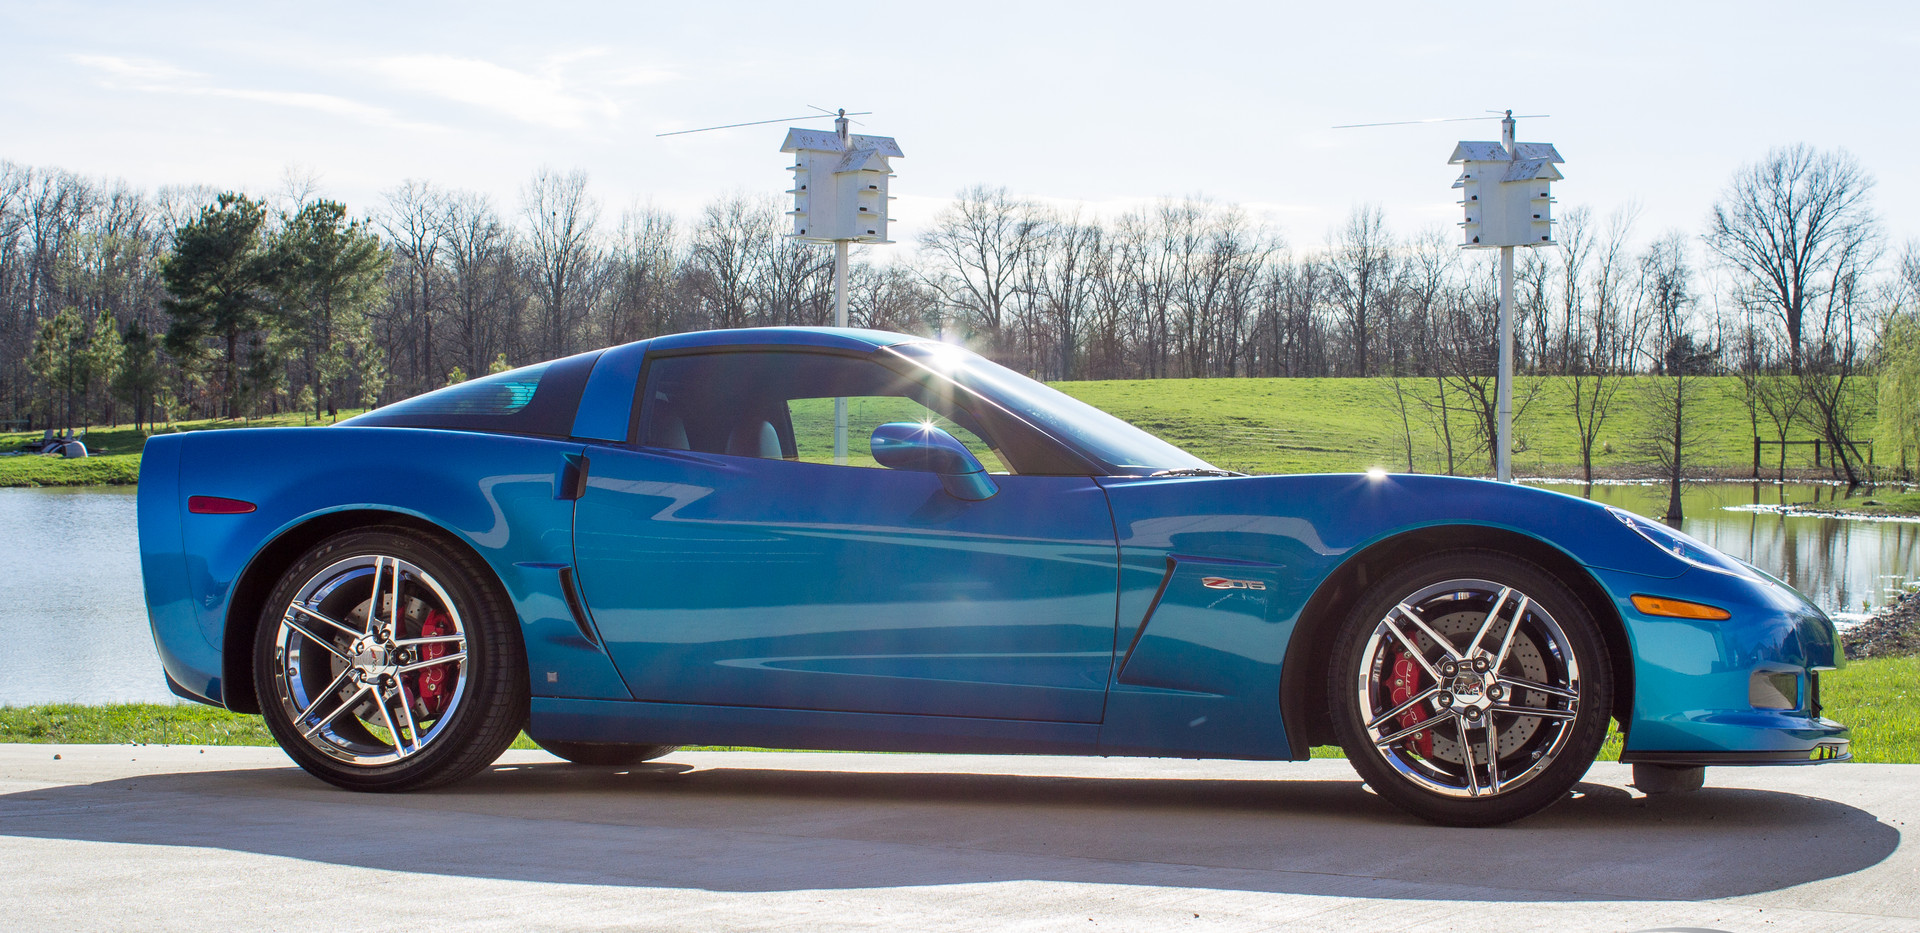 2008 Chevy Corvette Z06